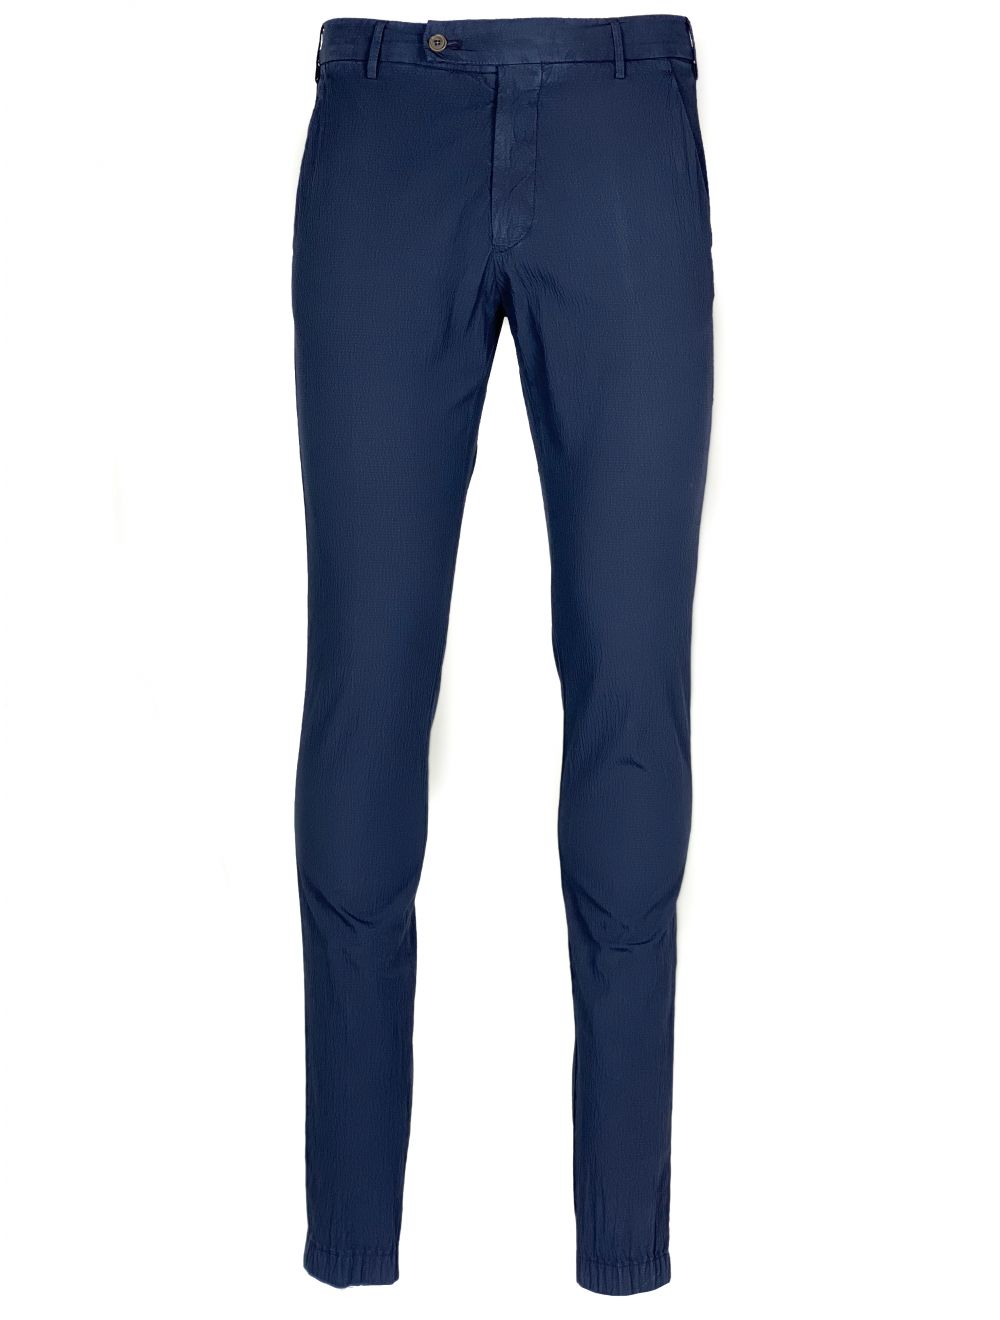 Boston Trader Seerscuker Pants - Navy